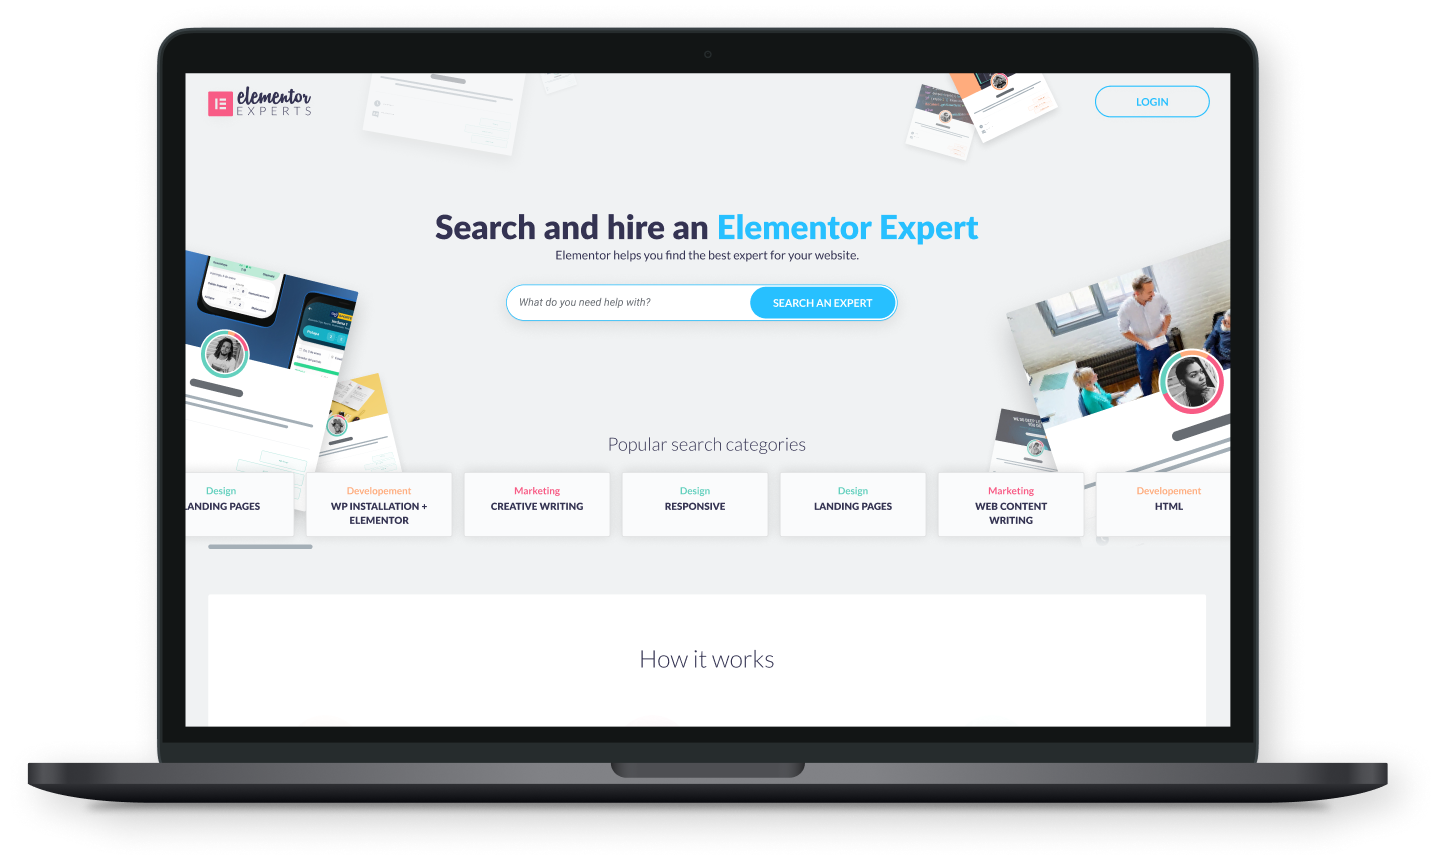 elementor experts main page